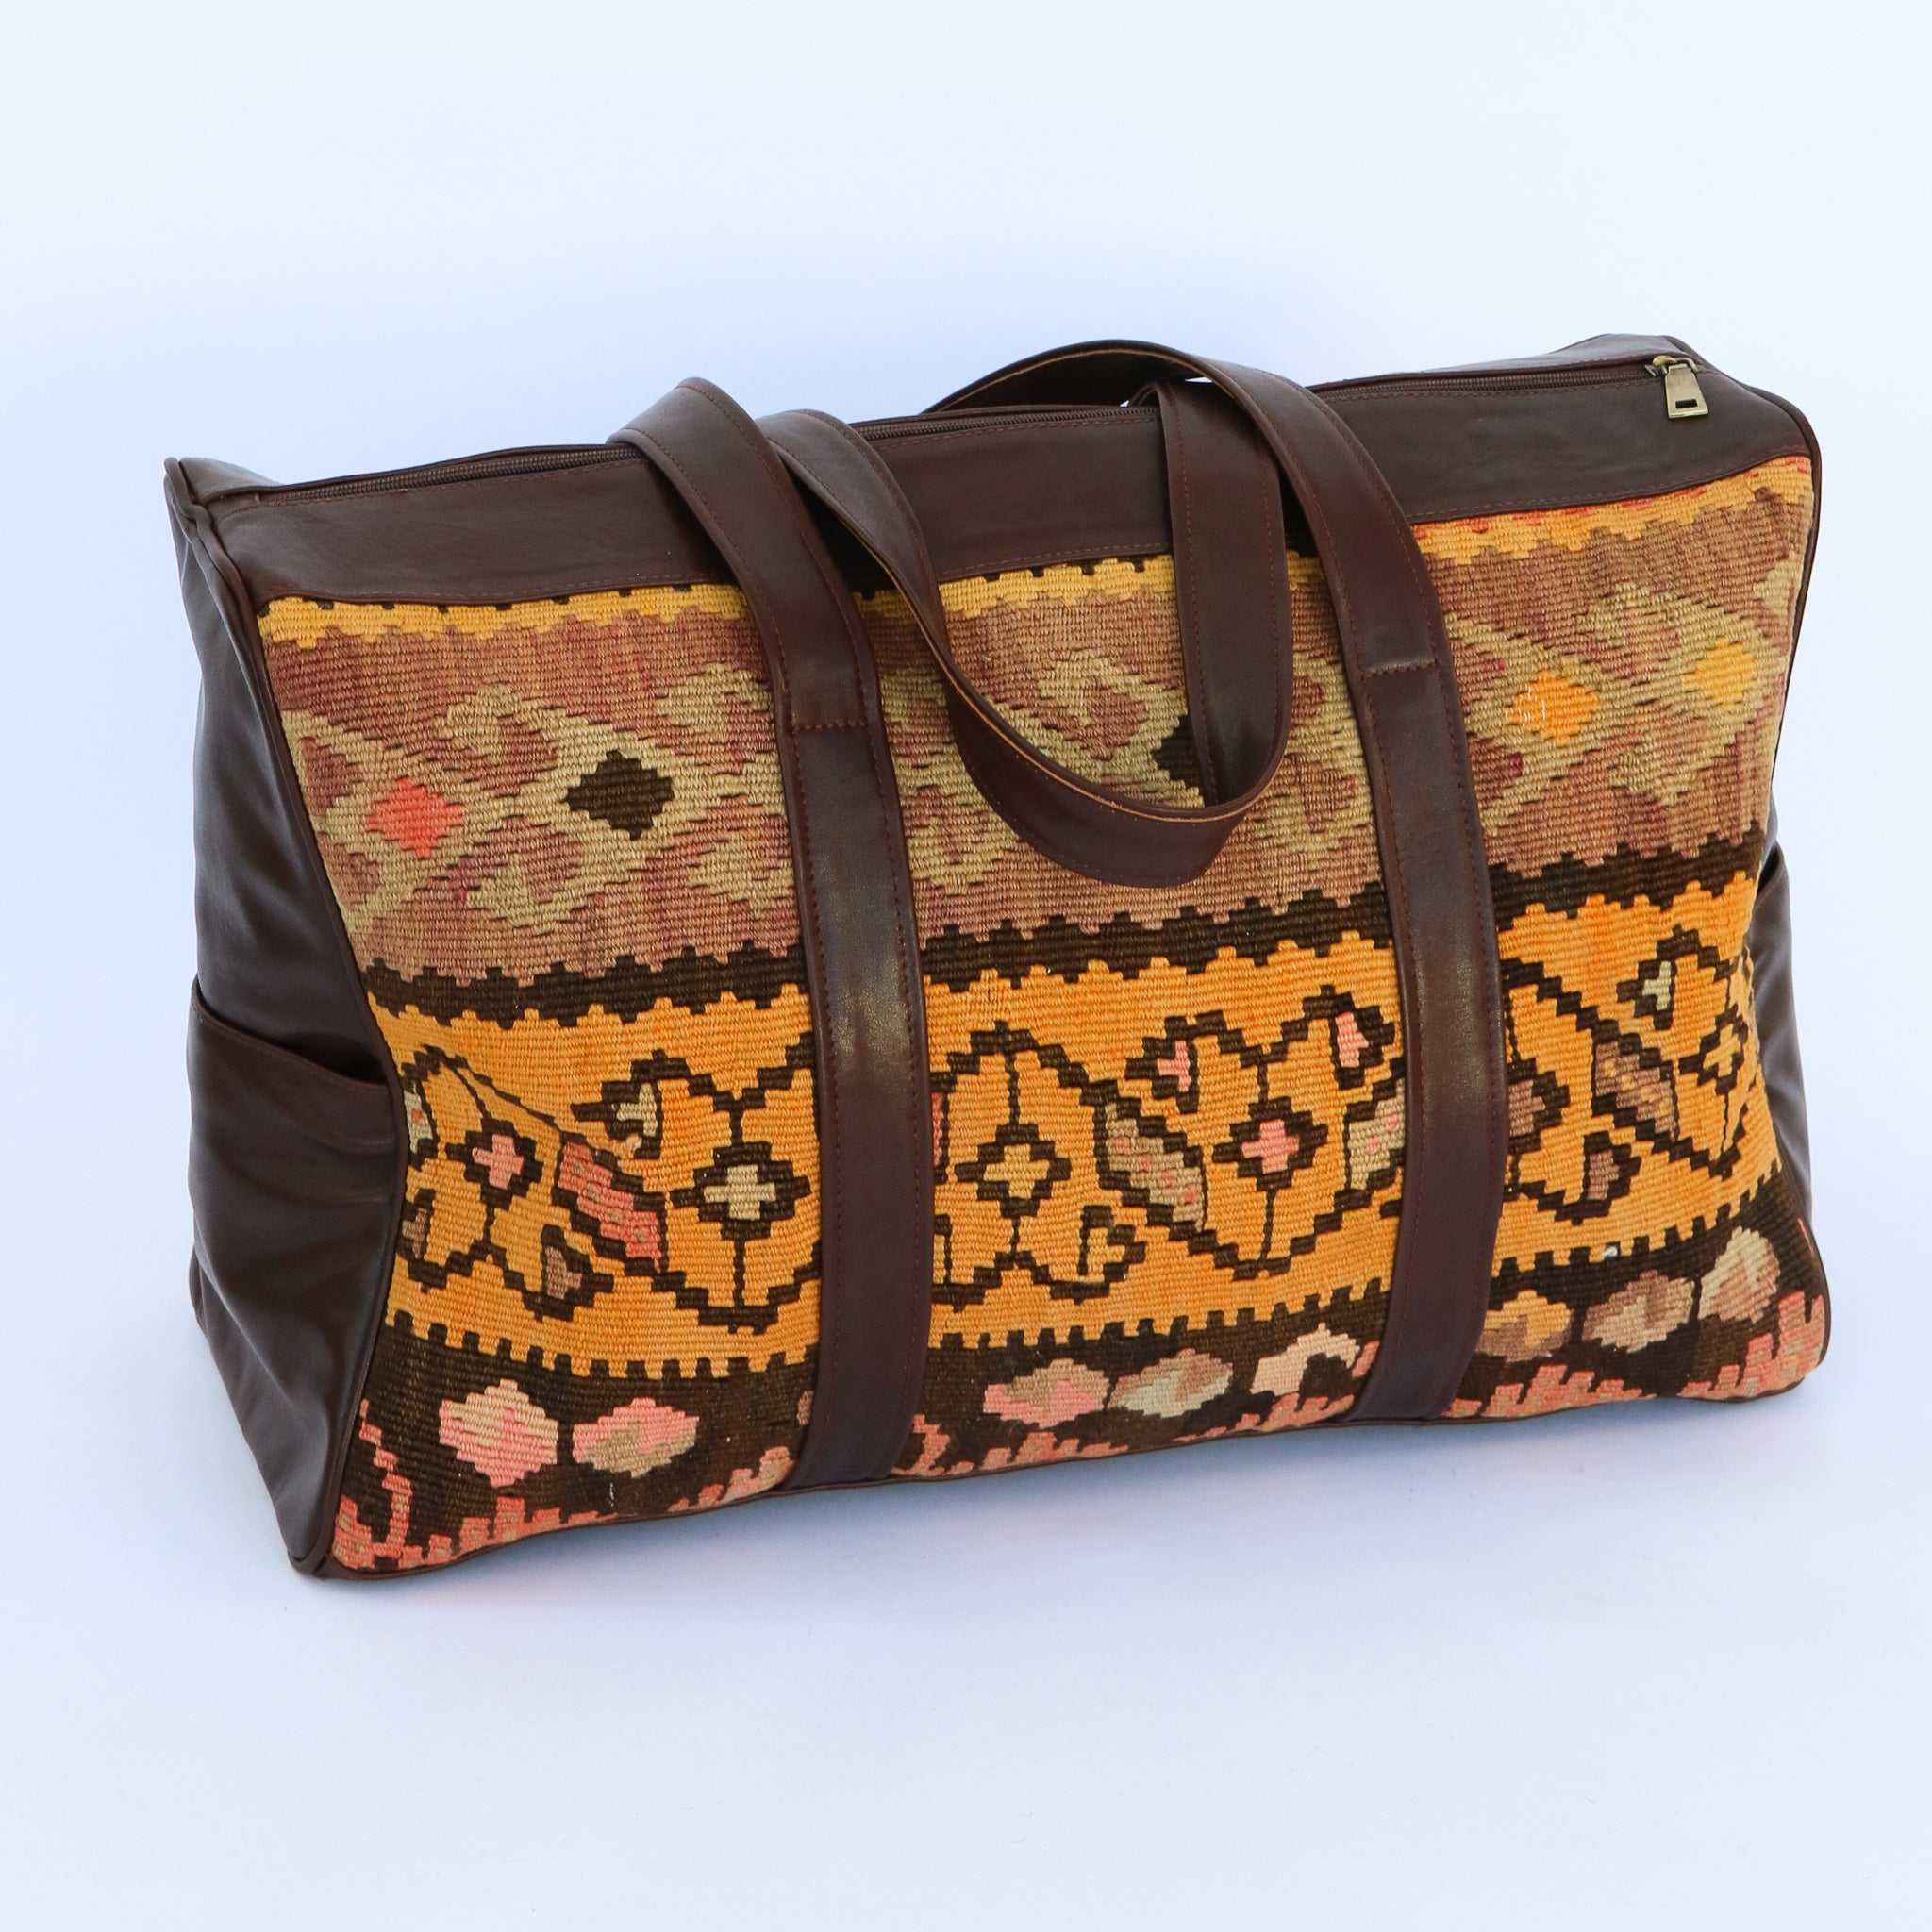 Kilim & Leather Overnight Bag #29 (w/ side pockets)